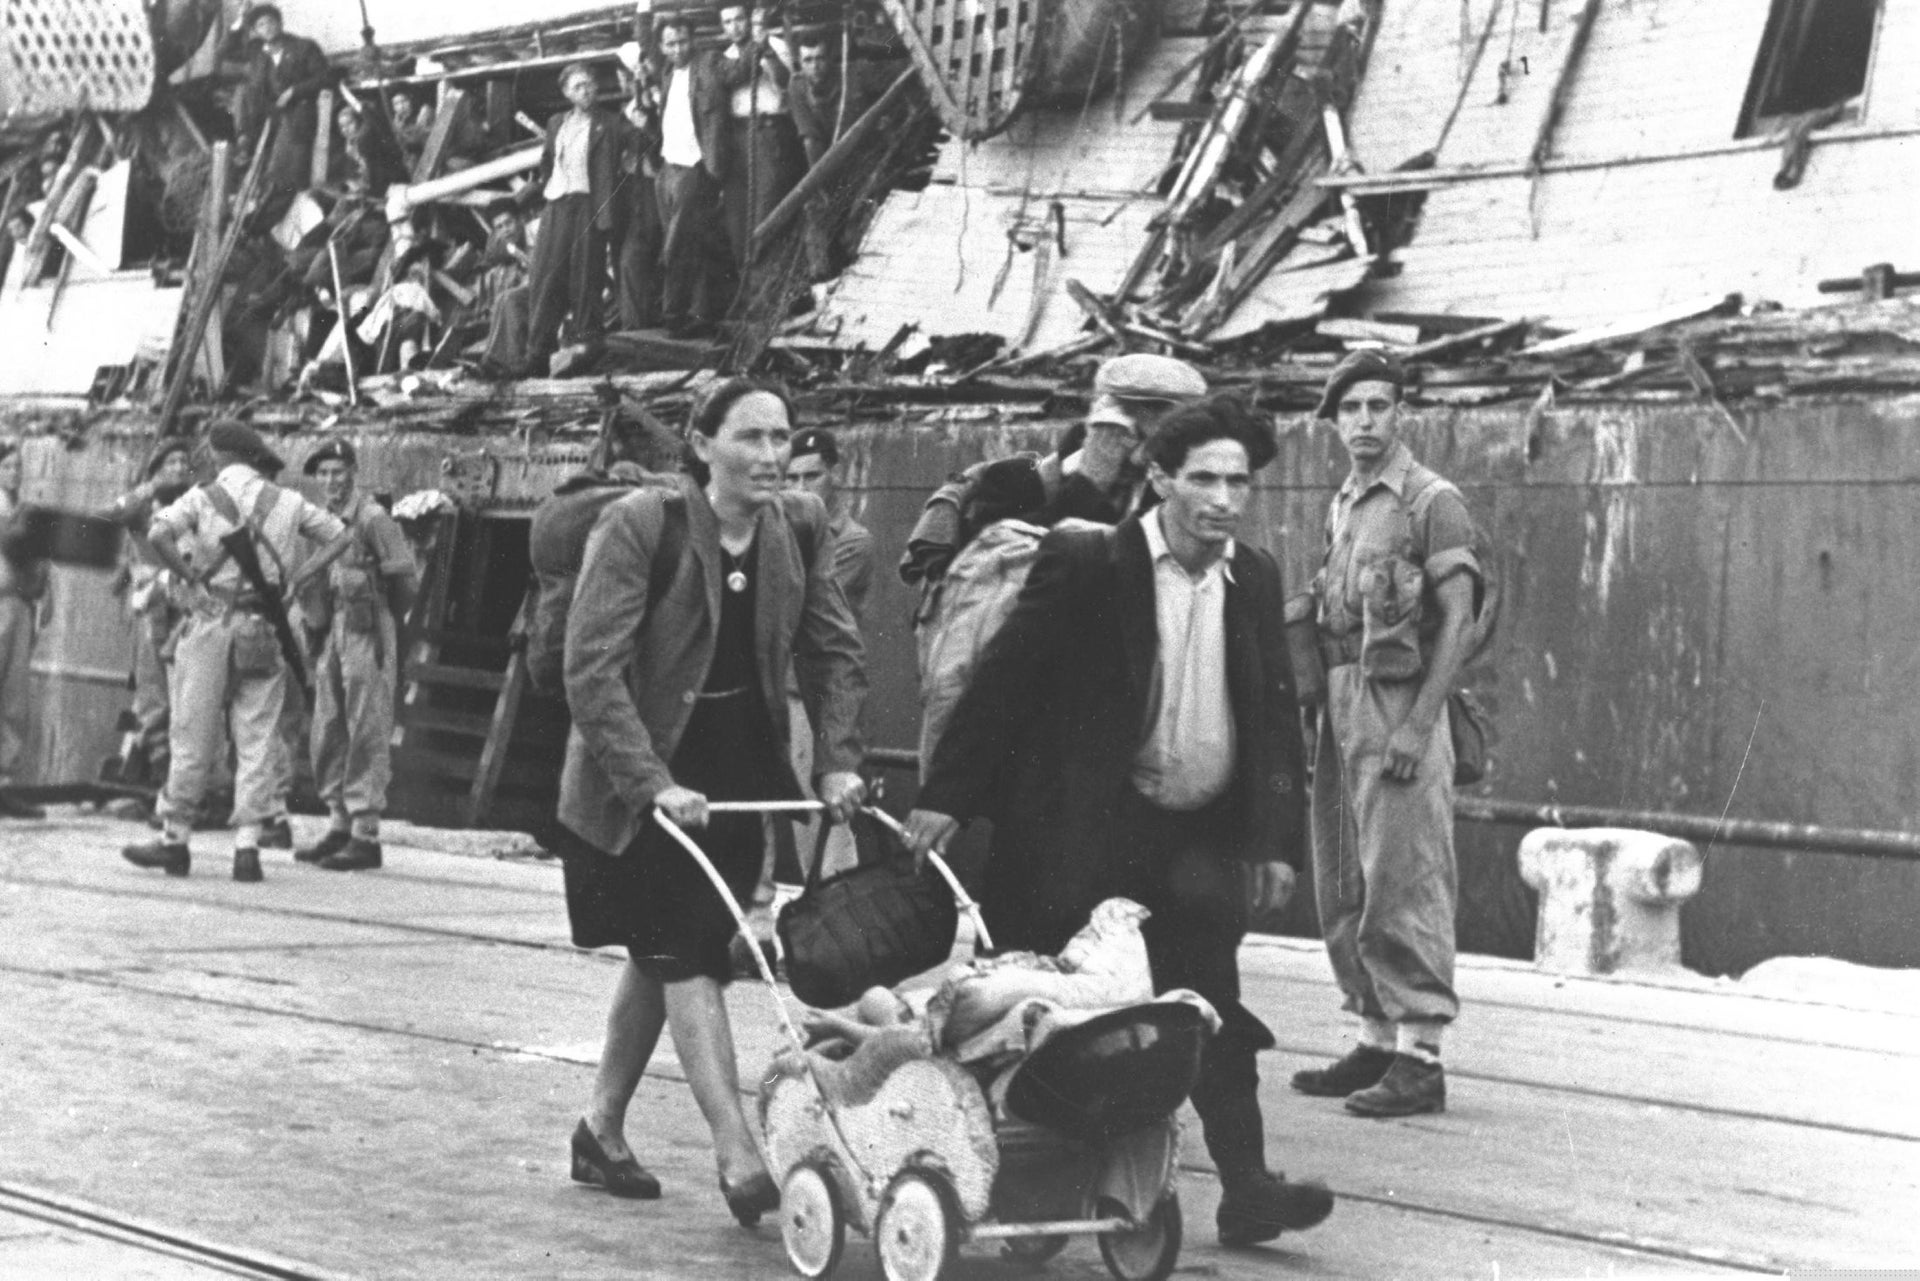 A family of illegal Jewish immigrants leave the Exodus in Haifa to be deported back to Europe, 1947.